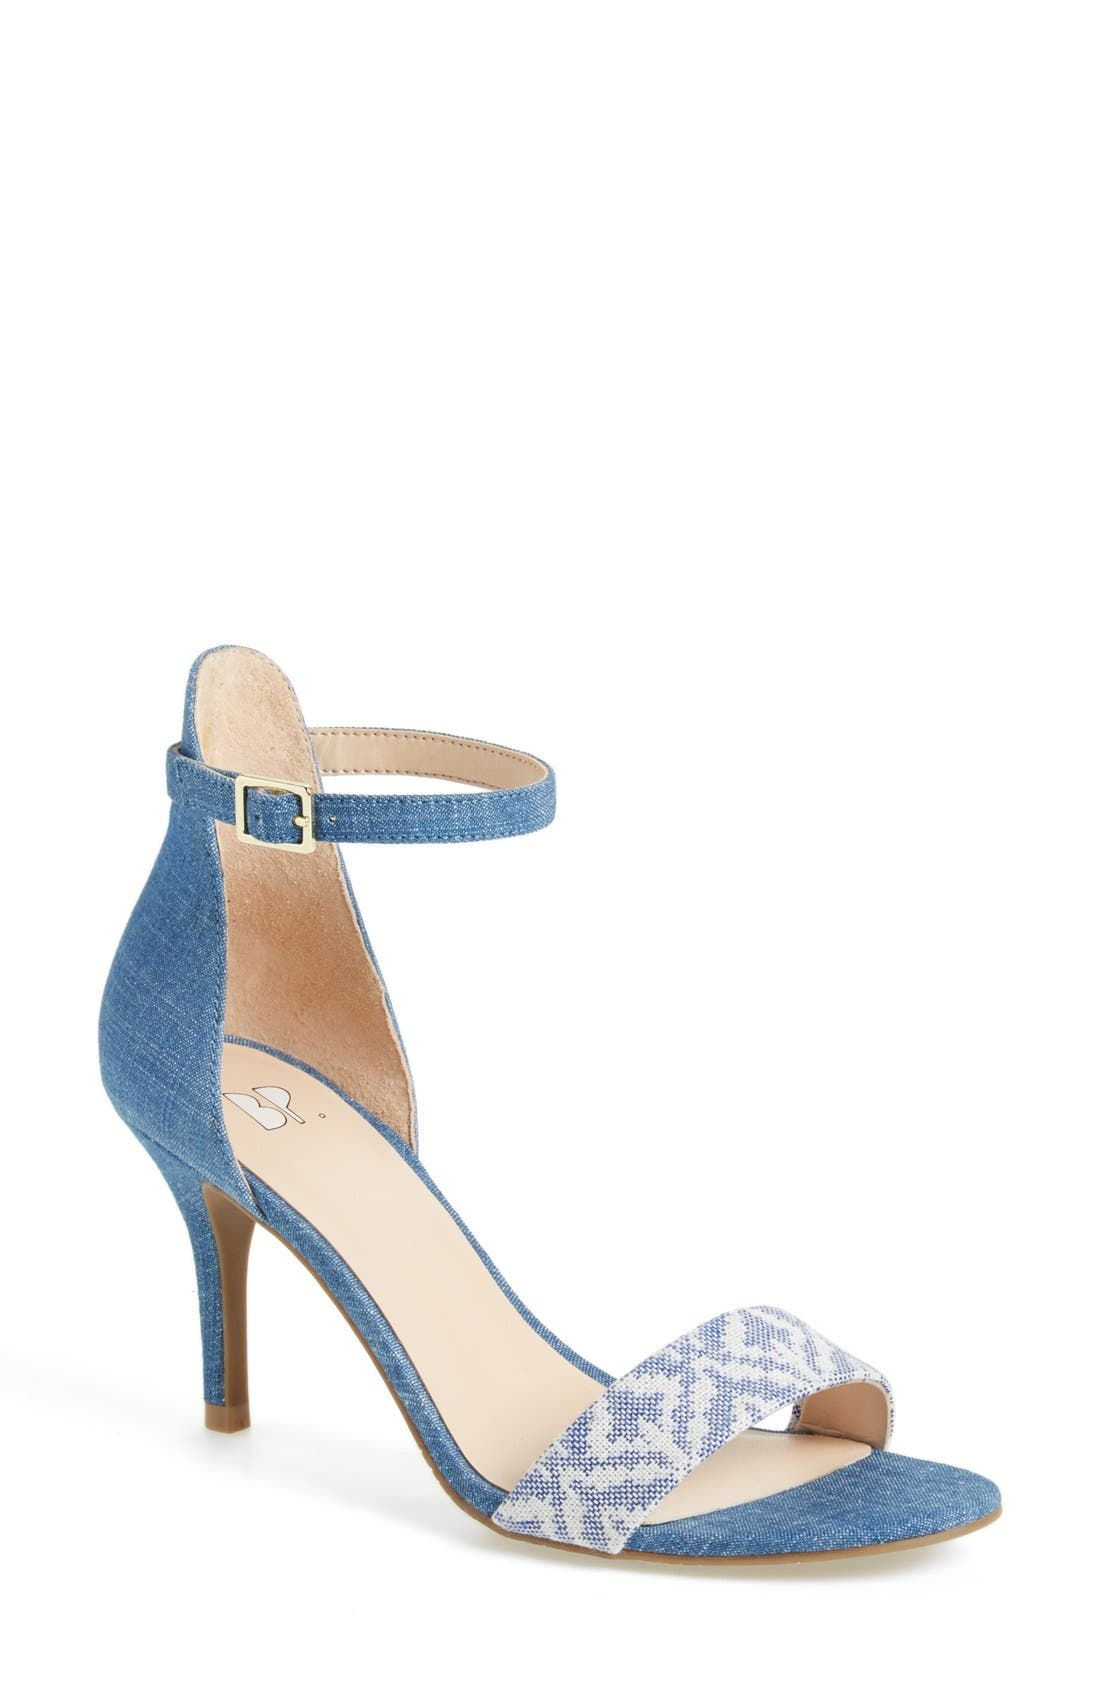 'Luminate' Open Toe Dress Sandal,                             Main thumbnail 36, color,